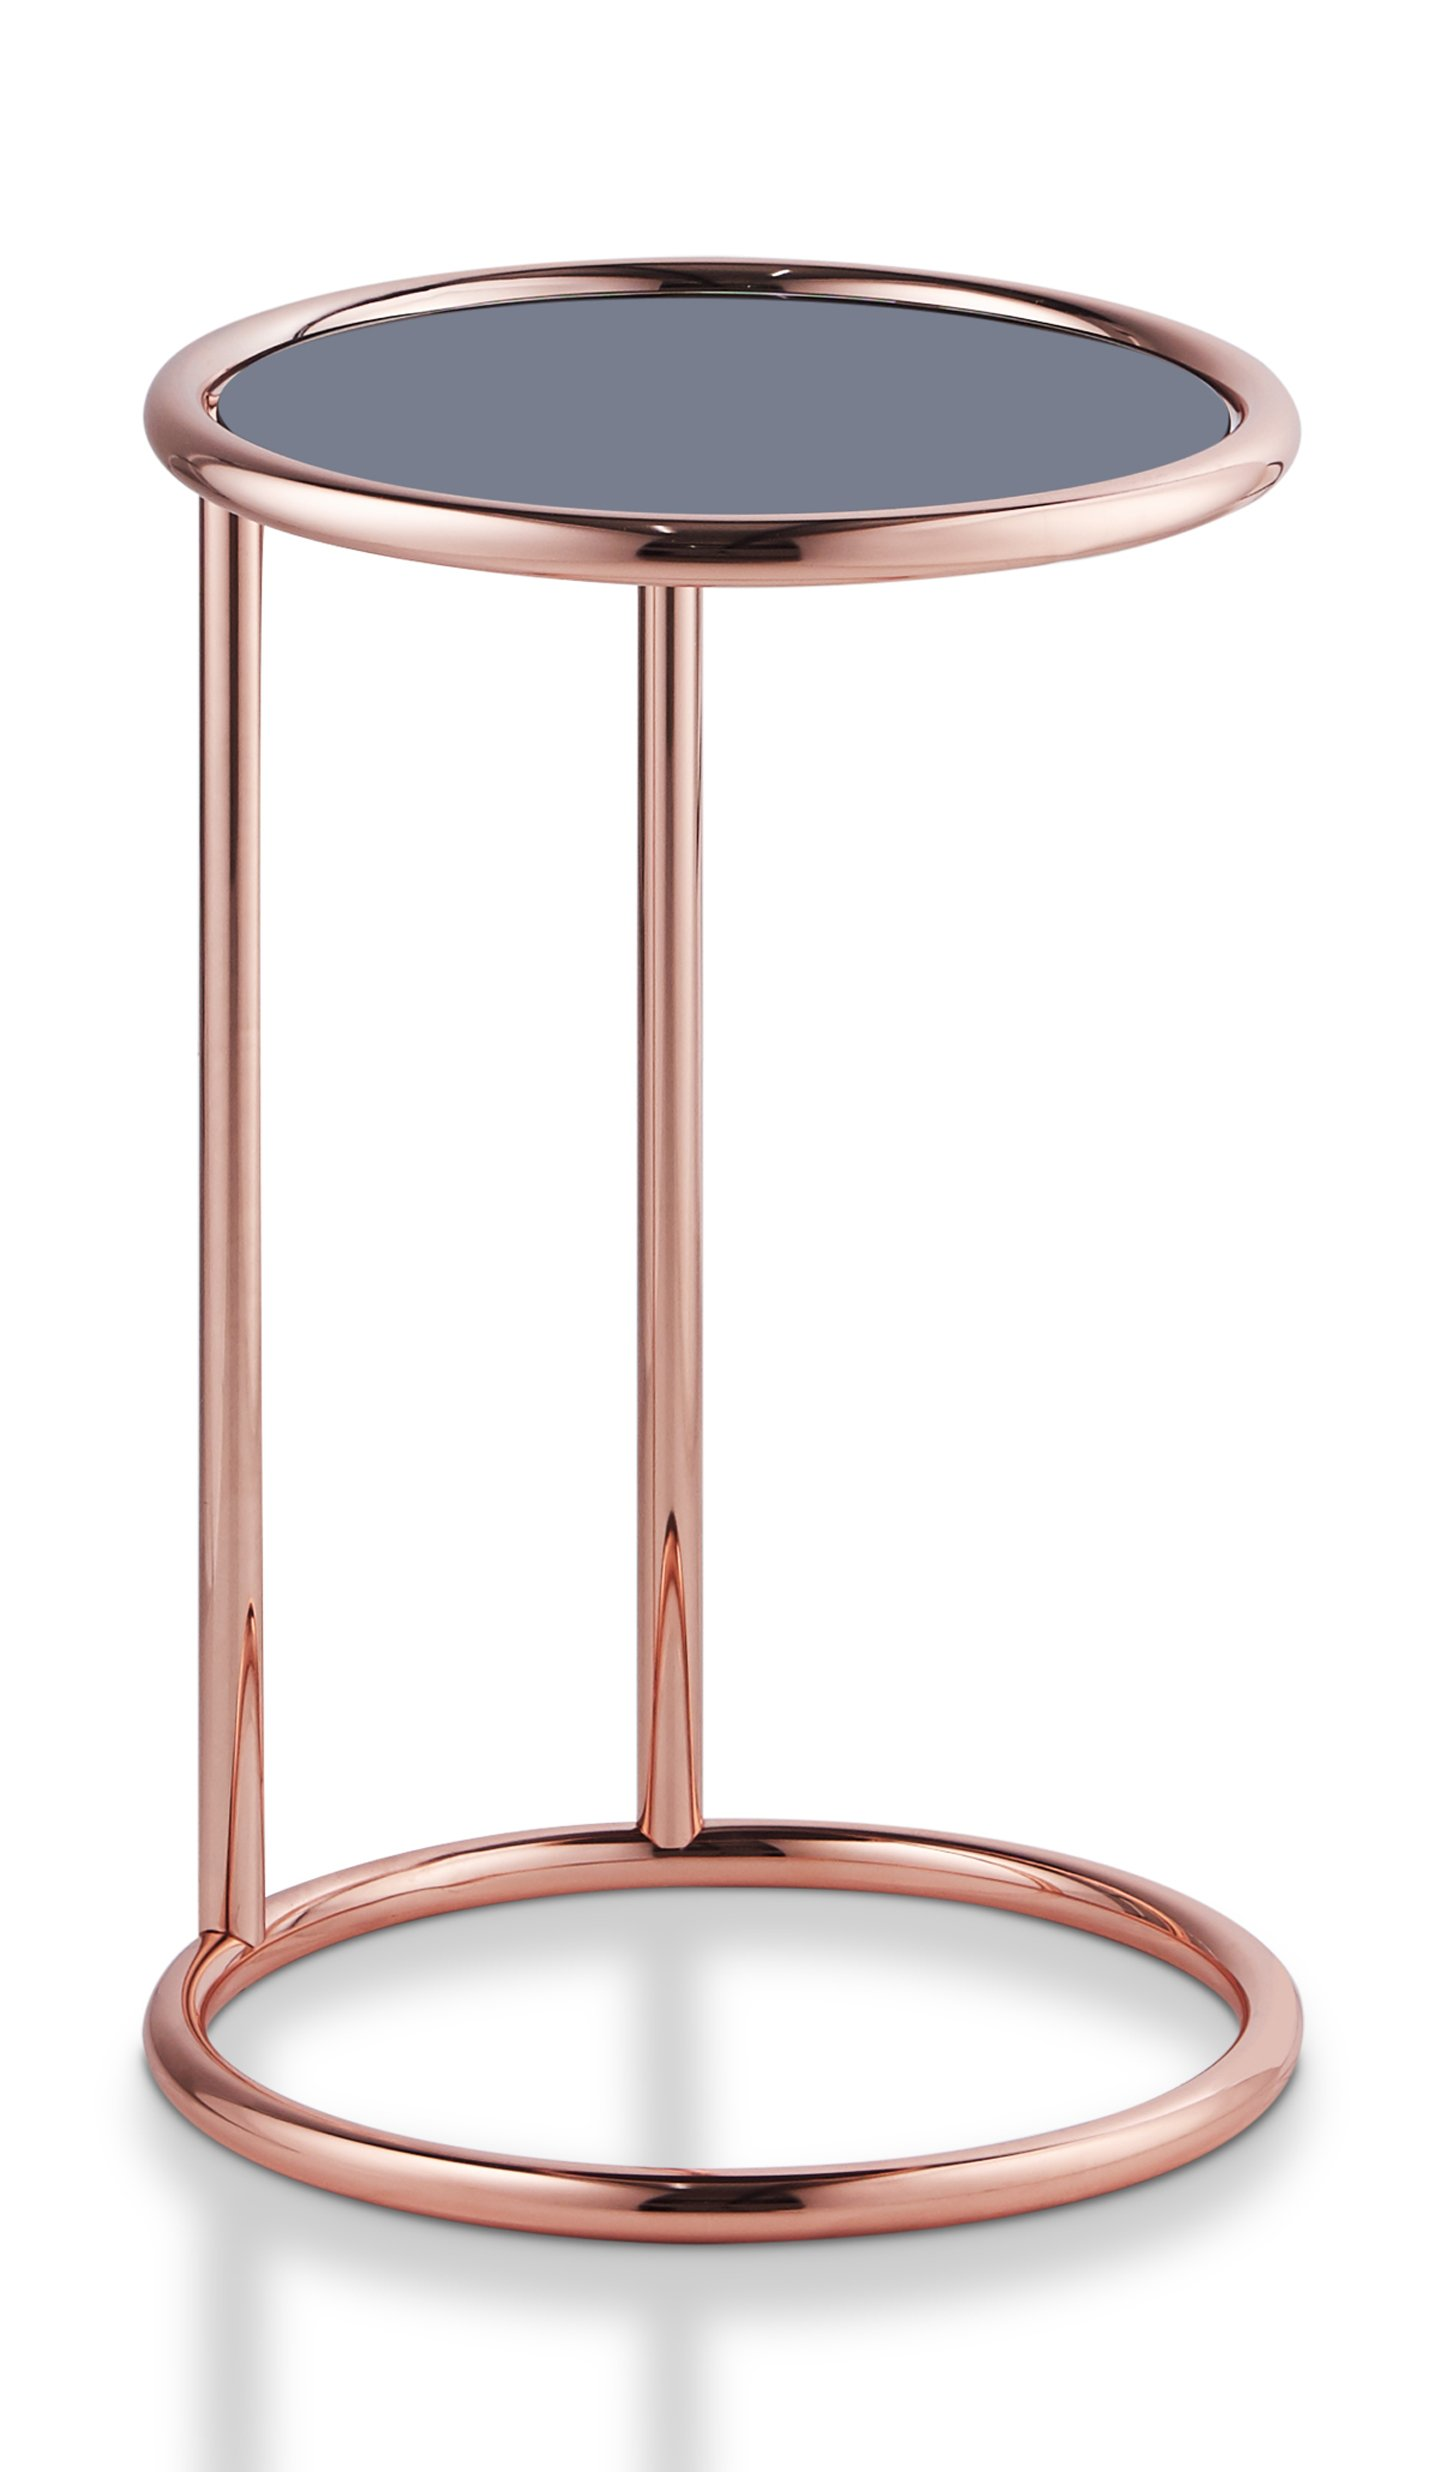 Furniture of America Besina Round End Table Contemporary Style - Rose Gold